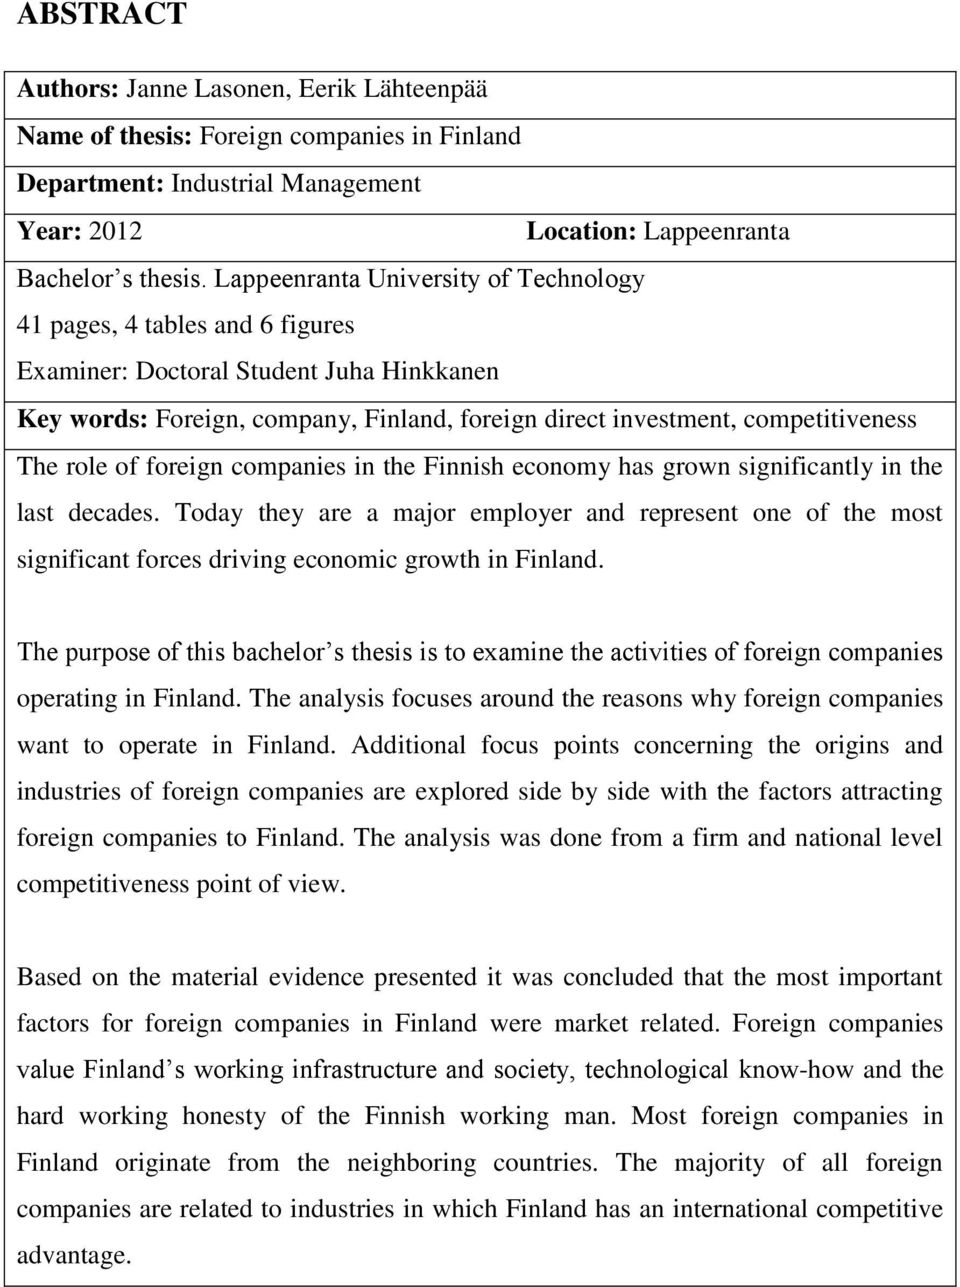 role of foreign companies in the Finnish economy has grown significantly in the last decades.